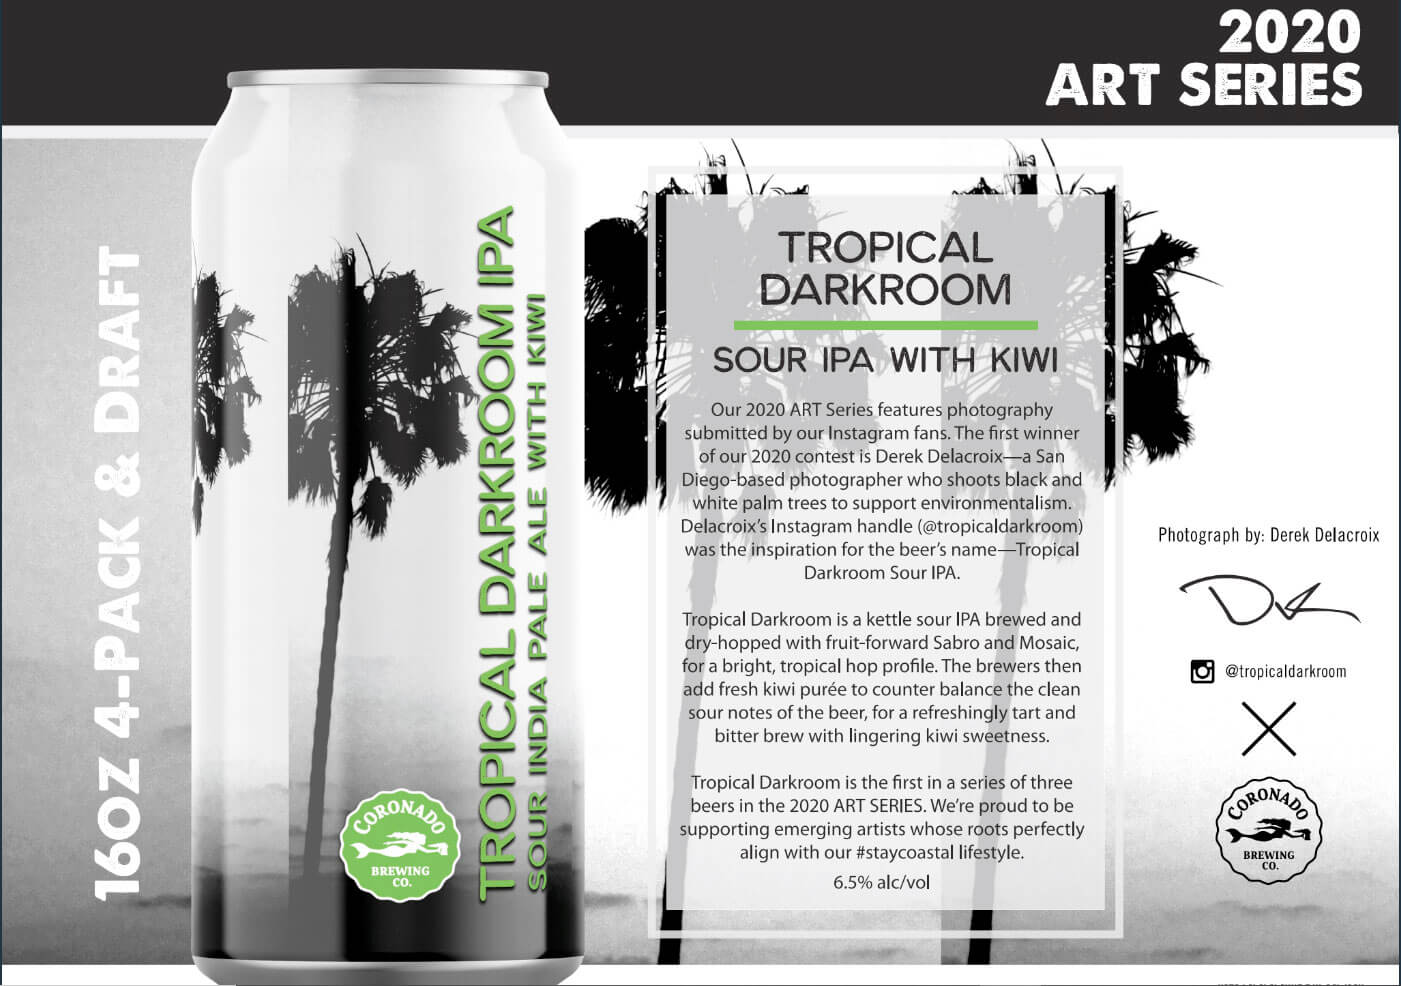 Coronado Brewing Co. is proud to bring back its Art Series for 2020 with its first release, Tropical Darkroom IPA, debuting on Friday, February 21st.